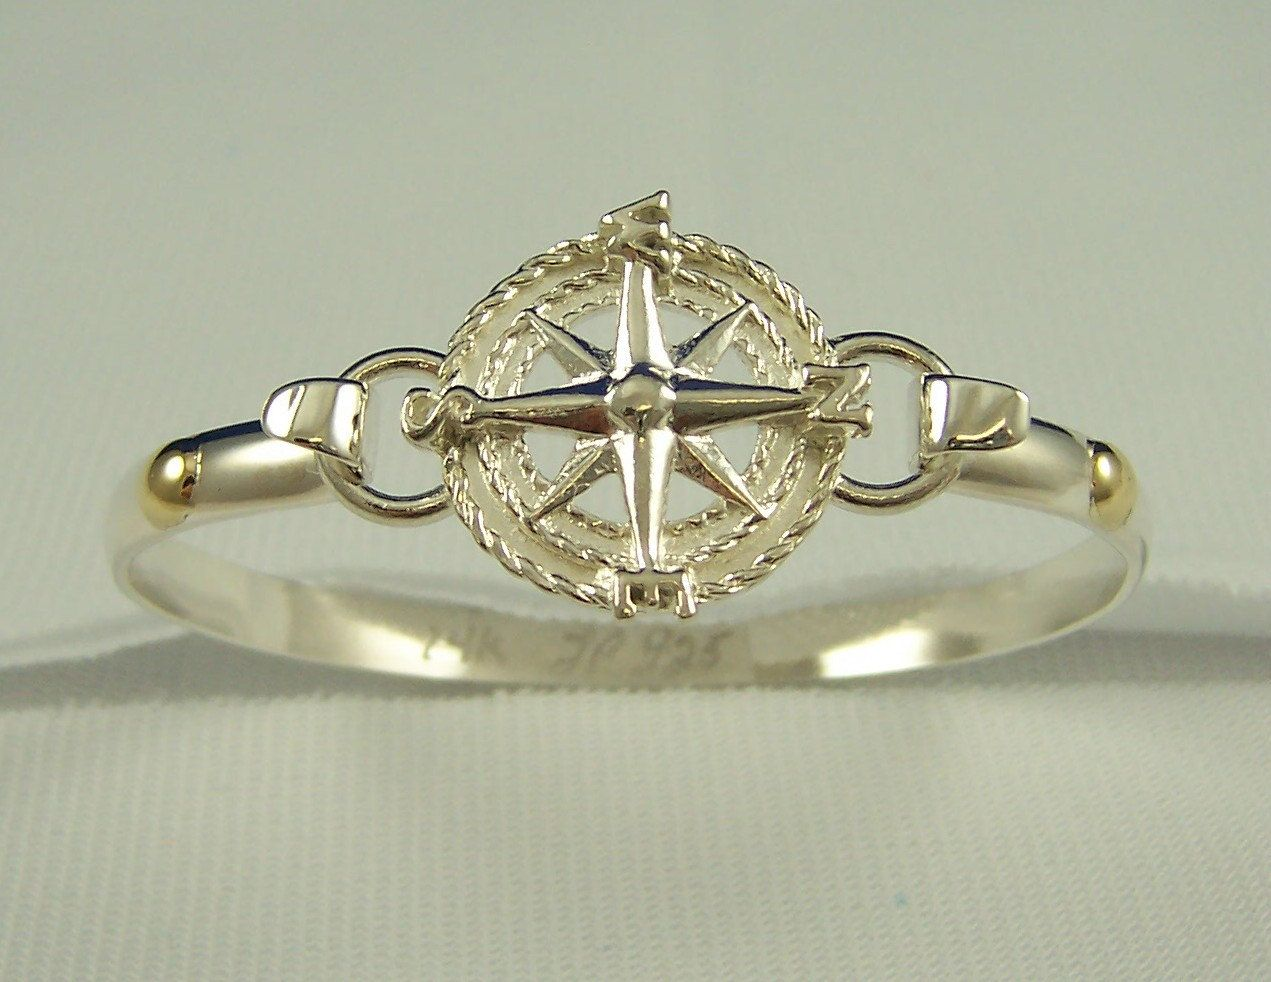 Sailors Compass Rose Convertible Bracelet   Sterling Silver With 14k Gold  Accents  Cape Cod